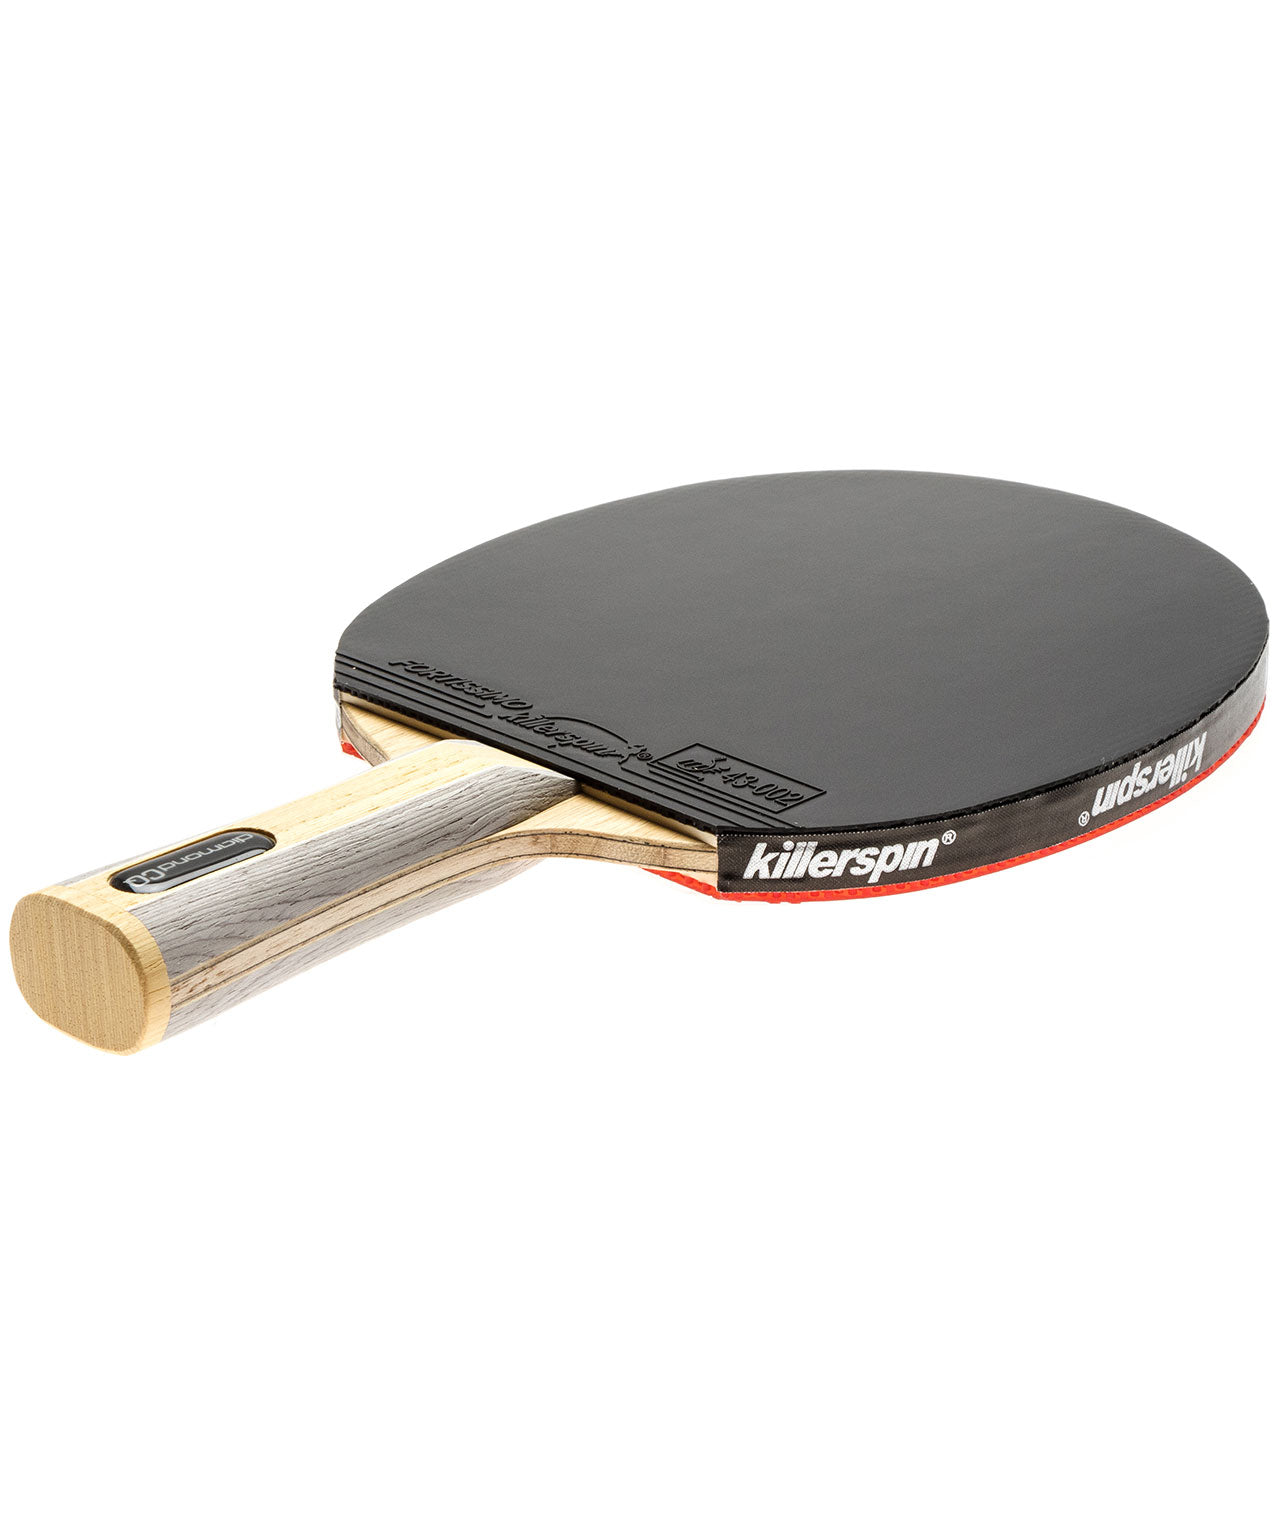 Killerspin Ping Pong Paddle Diamond CQ Premium - Flared Black Fortissimo Rubber